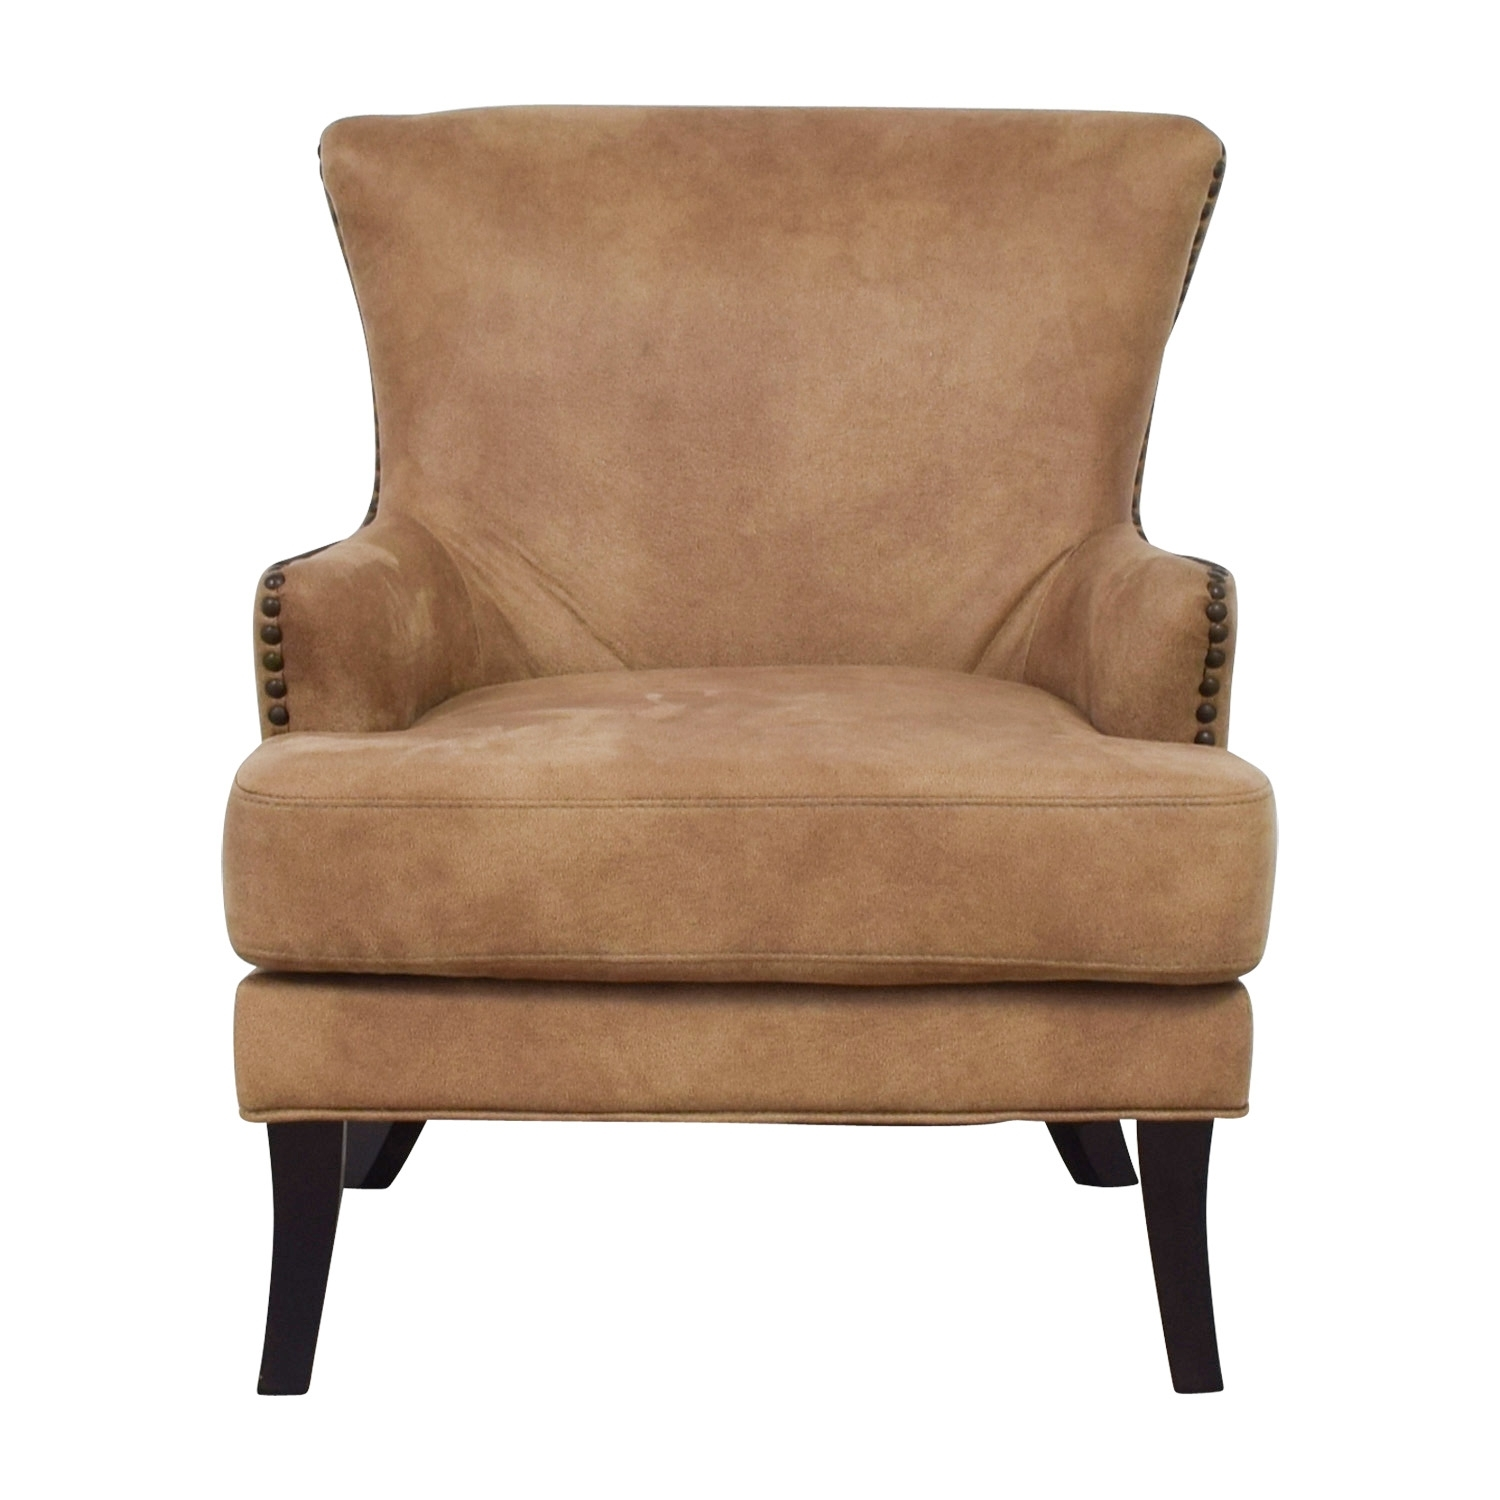 [%90% Off – Joss & Main Joss & Main Nola Brown Nailhead Arm Chair / Chairs With Well Known Joss Side Chairs|Joss Side Chairs With Regard To Famous 90% Off – Joss & Main Joss & Main Nola Brown Nailhead Arm Chair / Chairs|Fashionable Joss Side Chairs Intended For 90% Off – Joss & Main Joss & Main Nola Brown Nailhead Arm Chair / Chairs|Best And Newest 90% Off – Joss & Main Joss & Main Nola Brown Nailhead Arm Chair / Chairs Intended For Joss Side Chairs%] (#20 of 20)